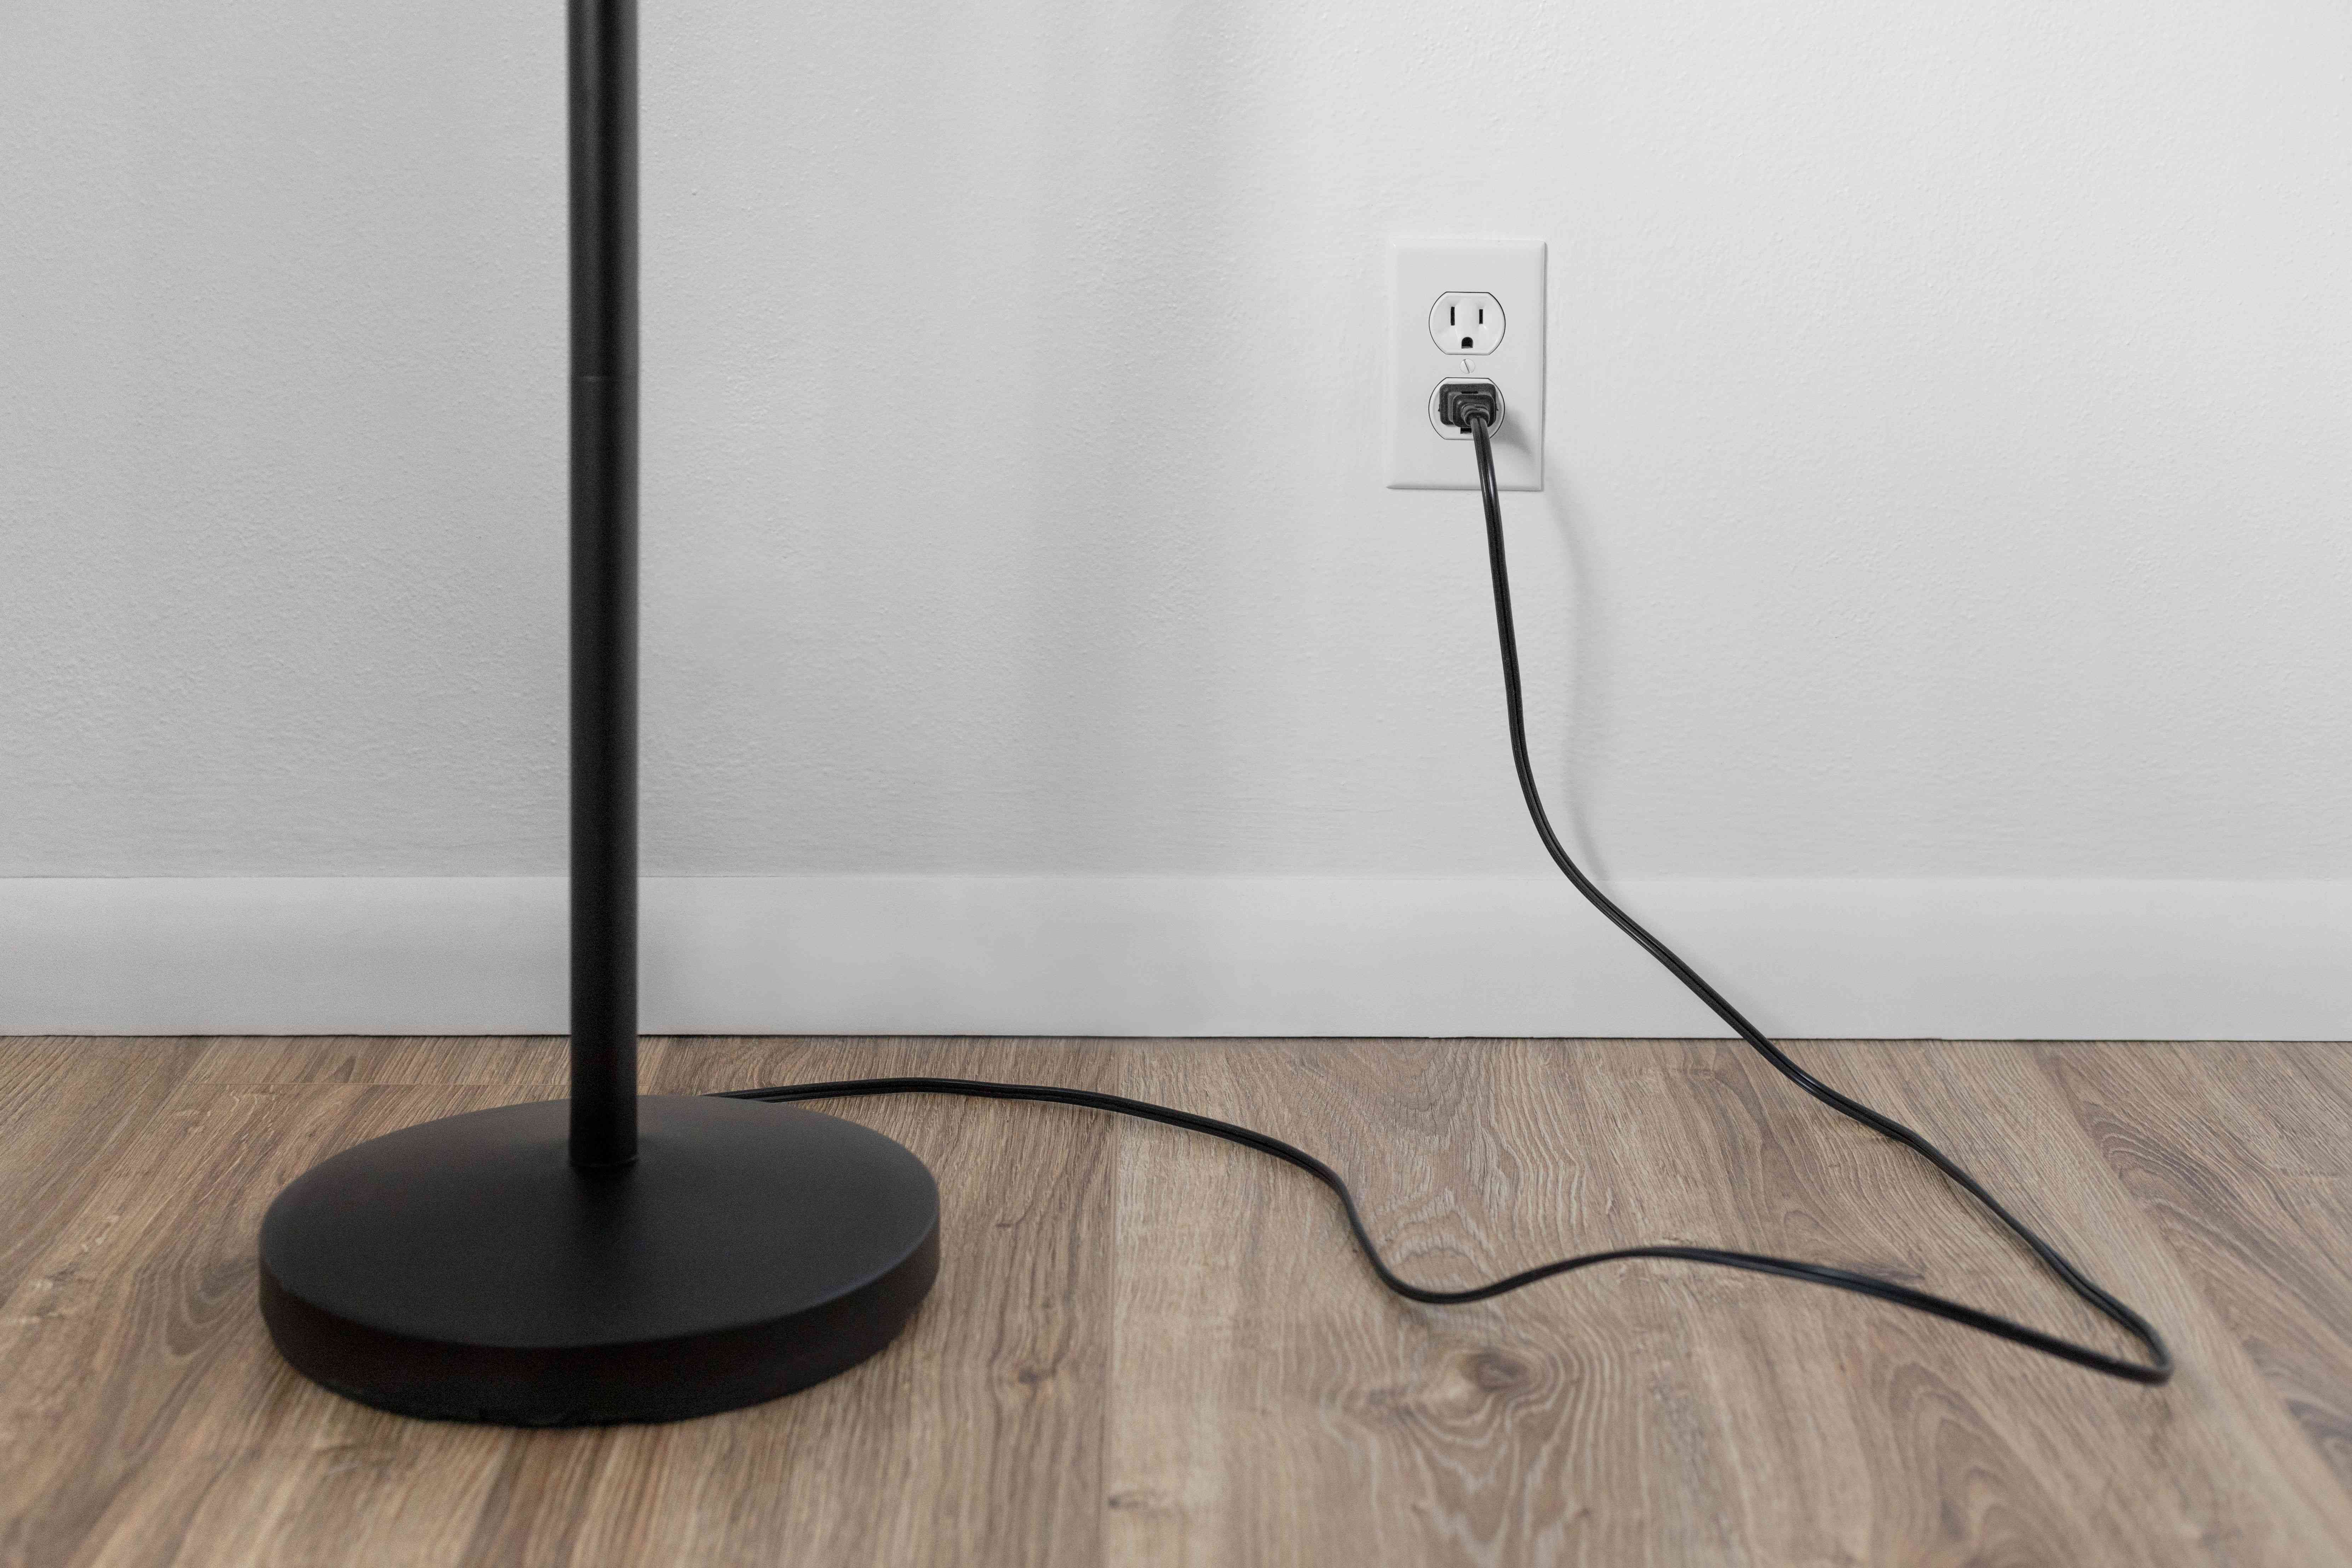 Floor lamp plugged into wall outlet